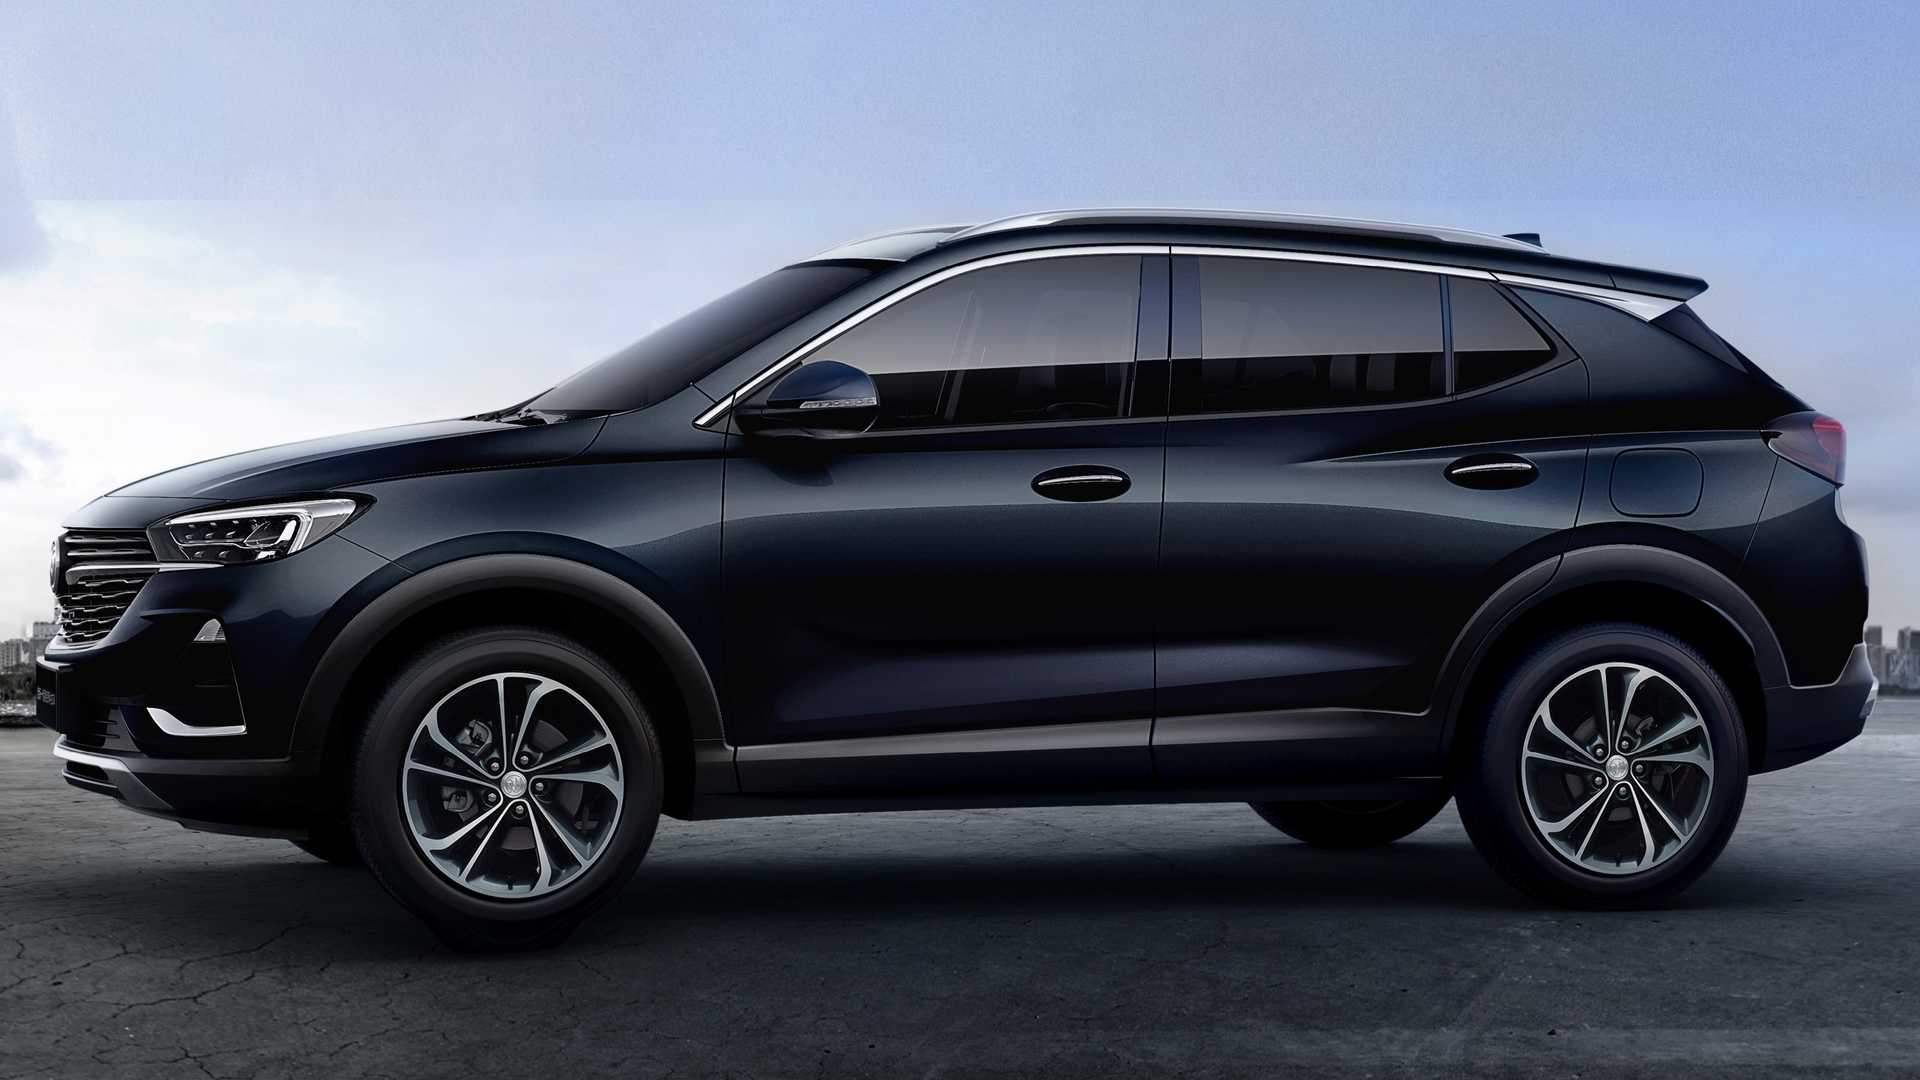 79 The Buick Encore Gx 2020 Pricing